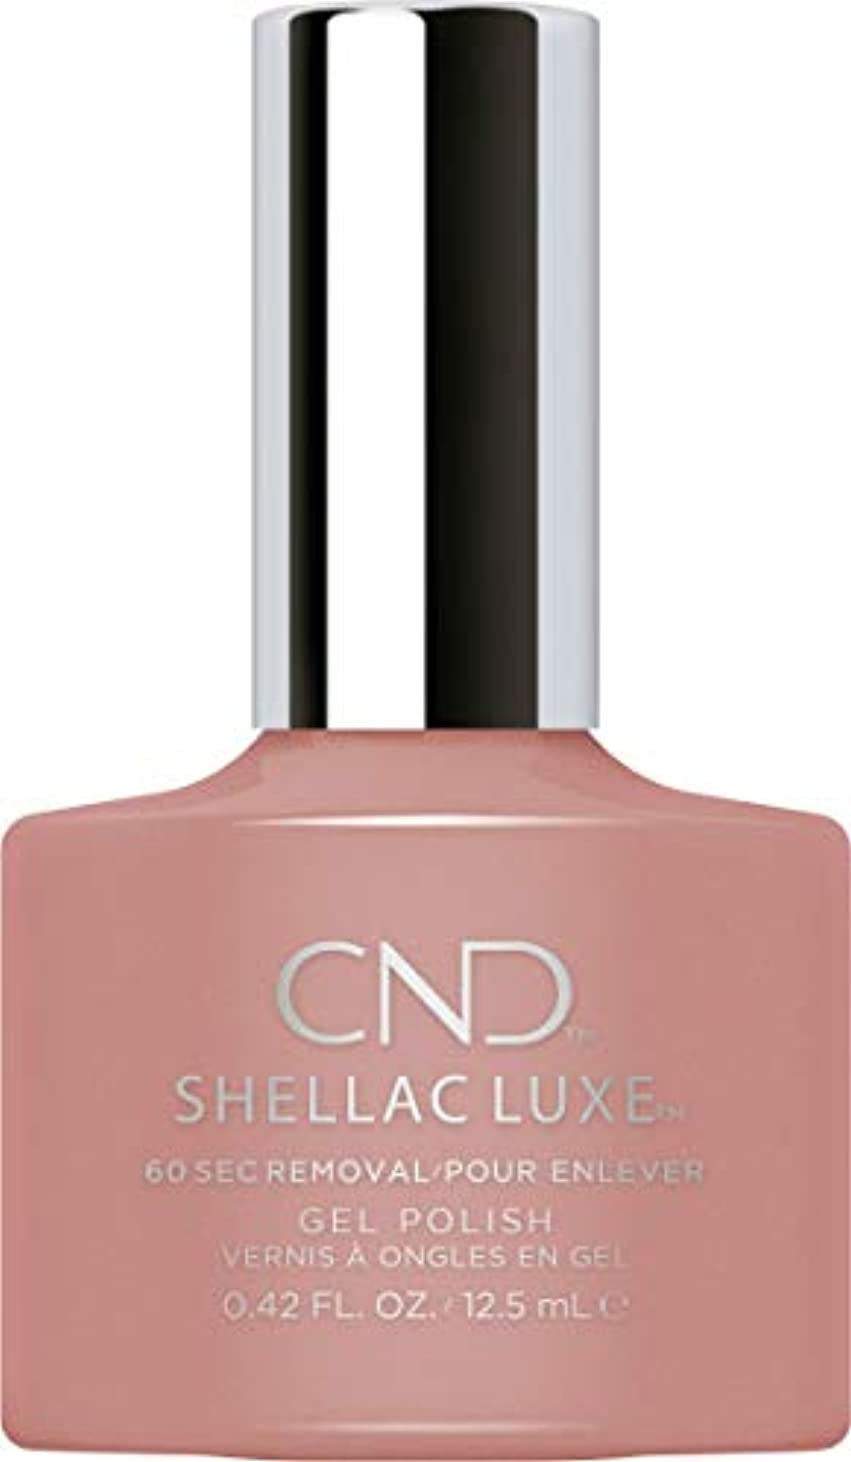 爆発物溶かすめまいCND Shellac Luxe - Satin Pajamas - 12.5 ml / 0.42 oz